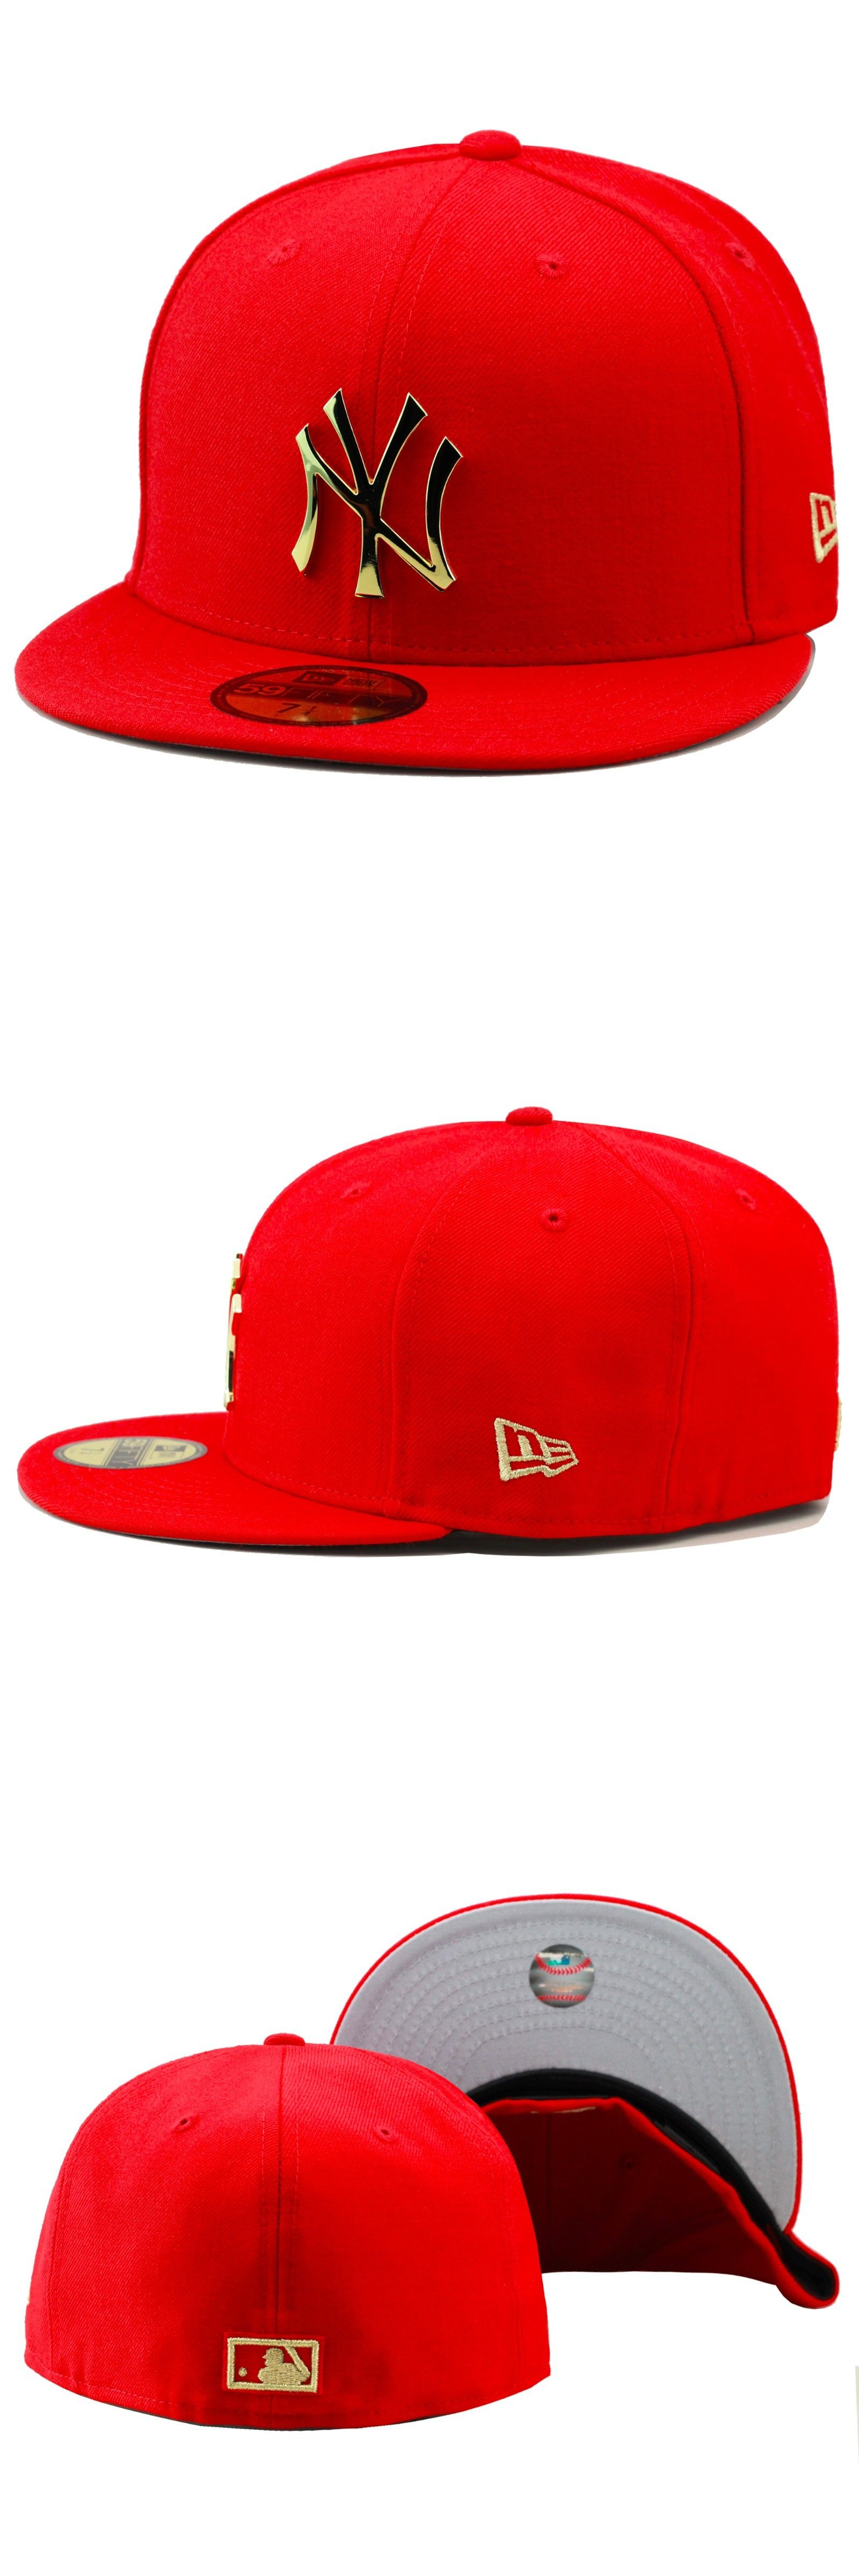 149bf740f64ec Hats 52365  New Era New York Yankees Fitted Hat Cap Red Gold Badge For Foamposite  1 Supreme -  BUY IT NOW ONLY   59 on eBay!